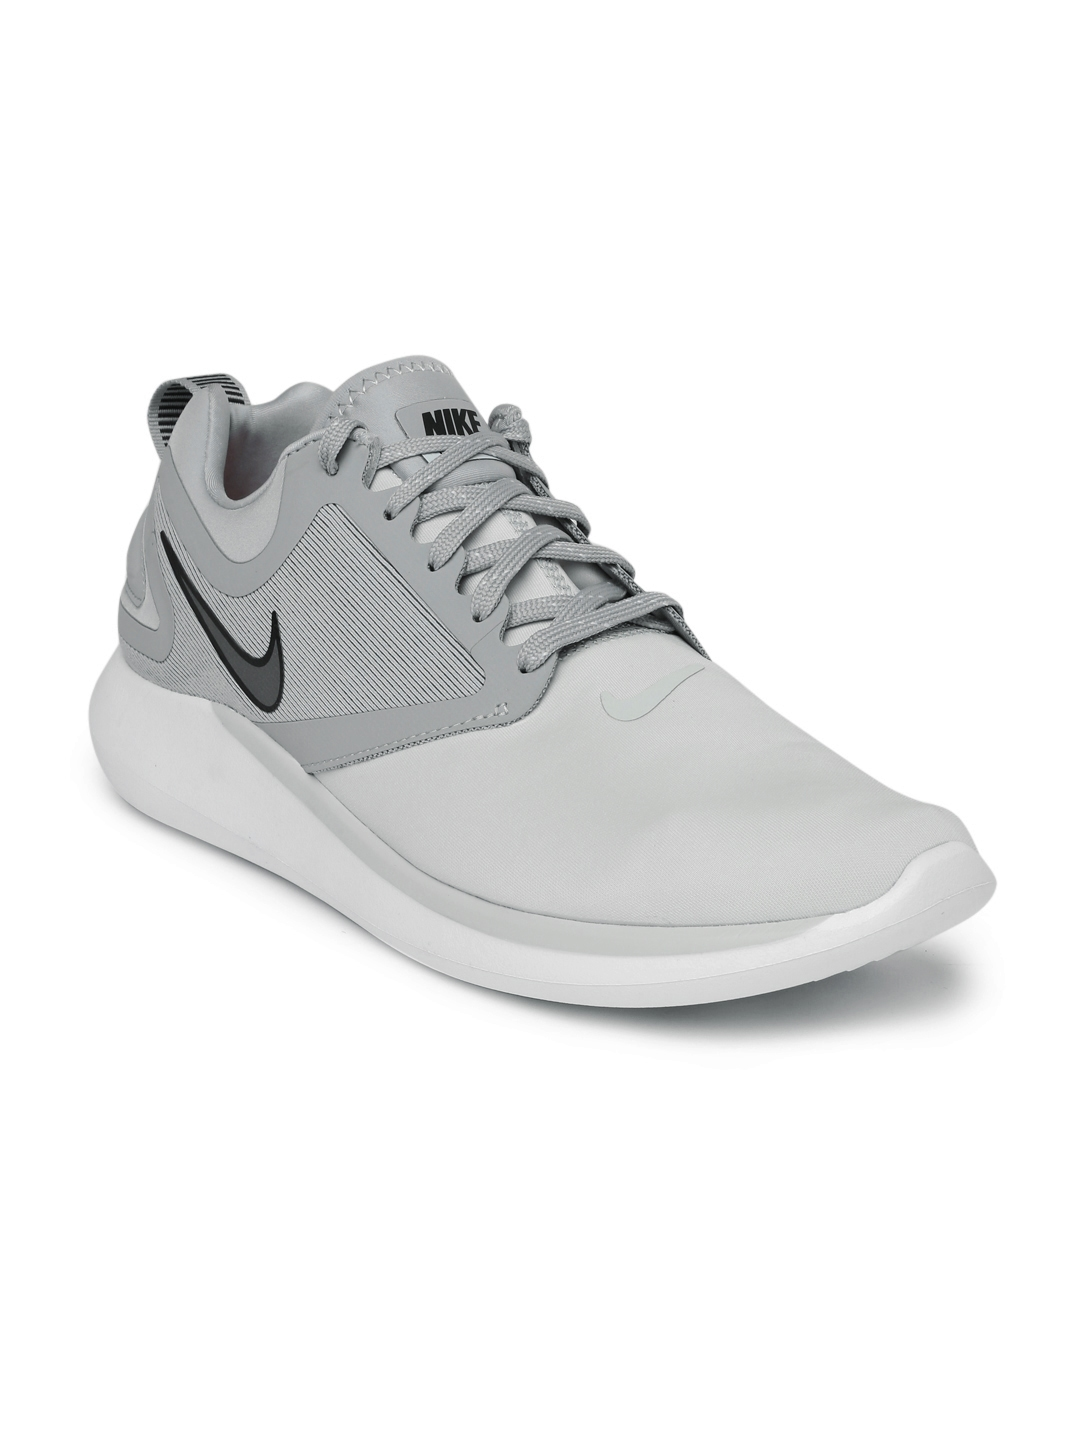 watch 8fa87 b63f7 11503483819165-Nike-Men-Grey-Running-Shoes-8271503483819049-1.jpg